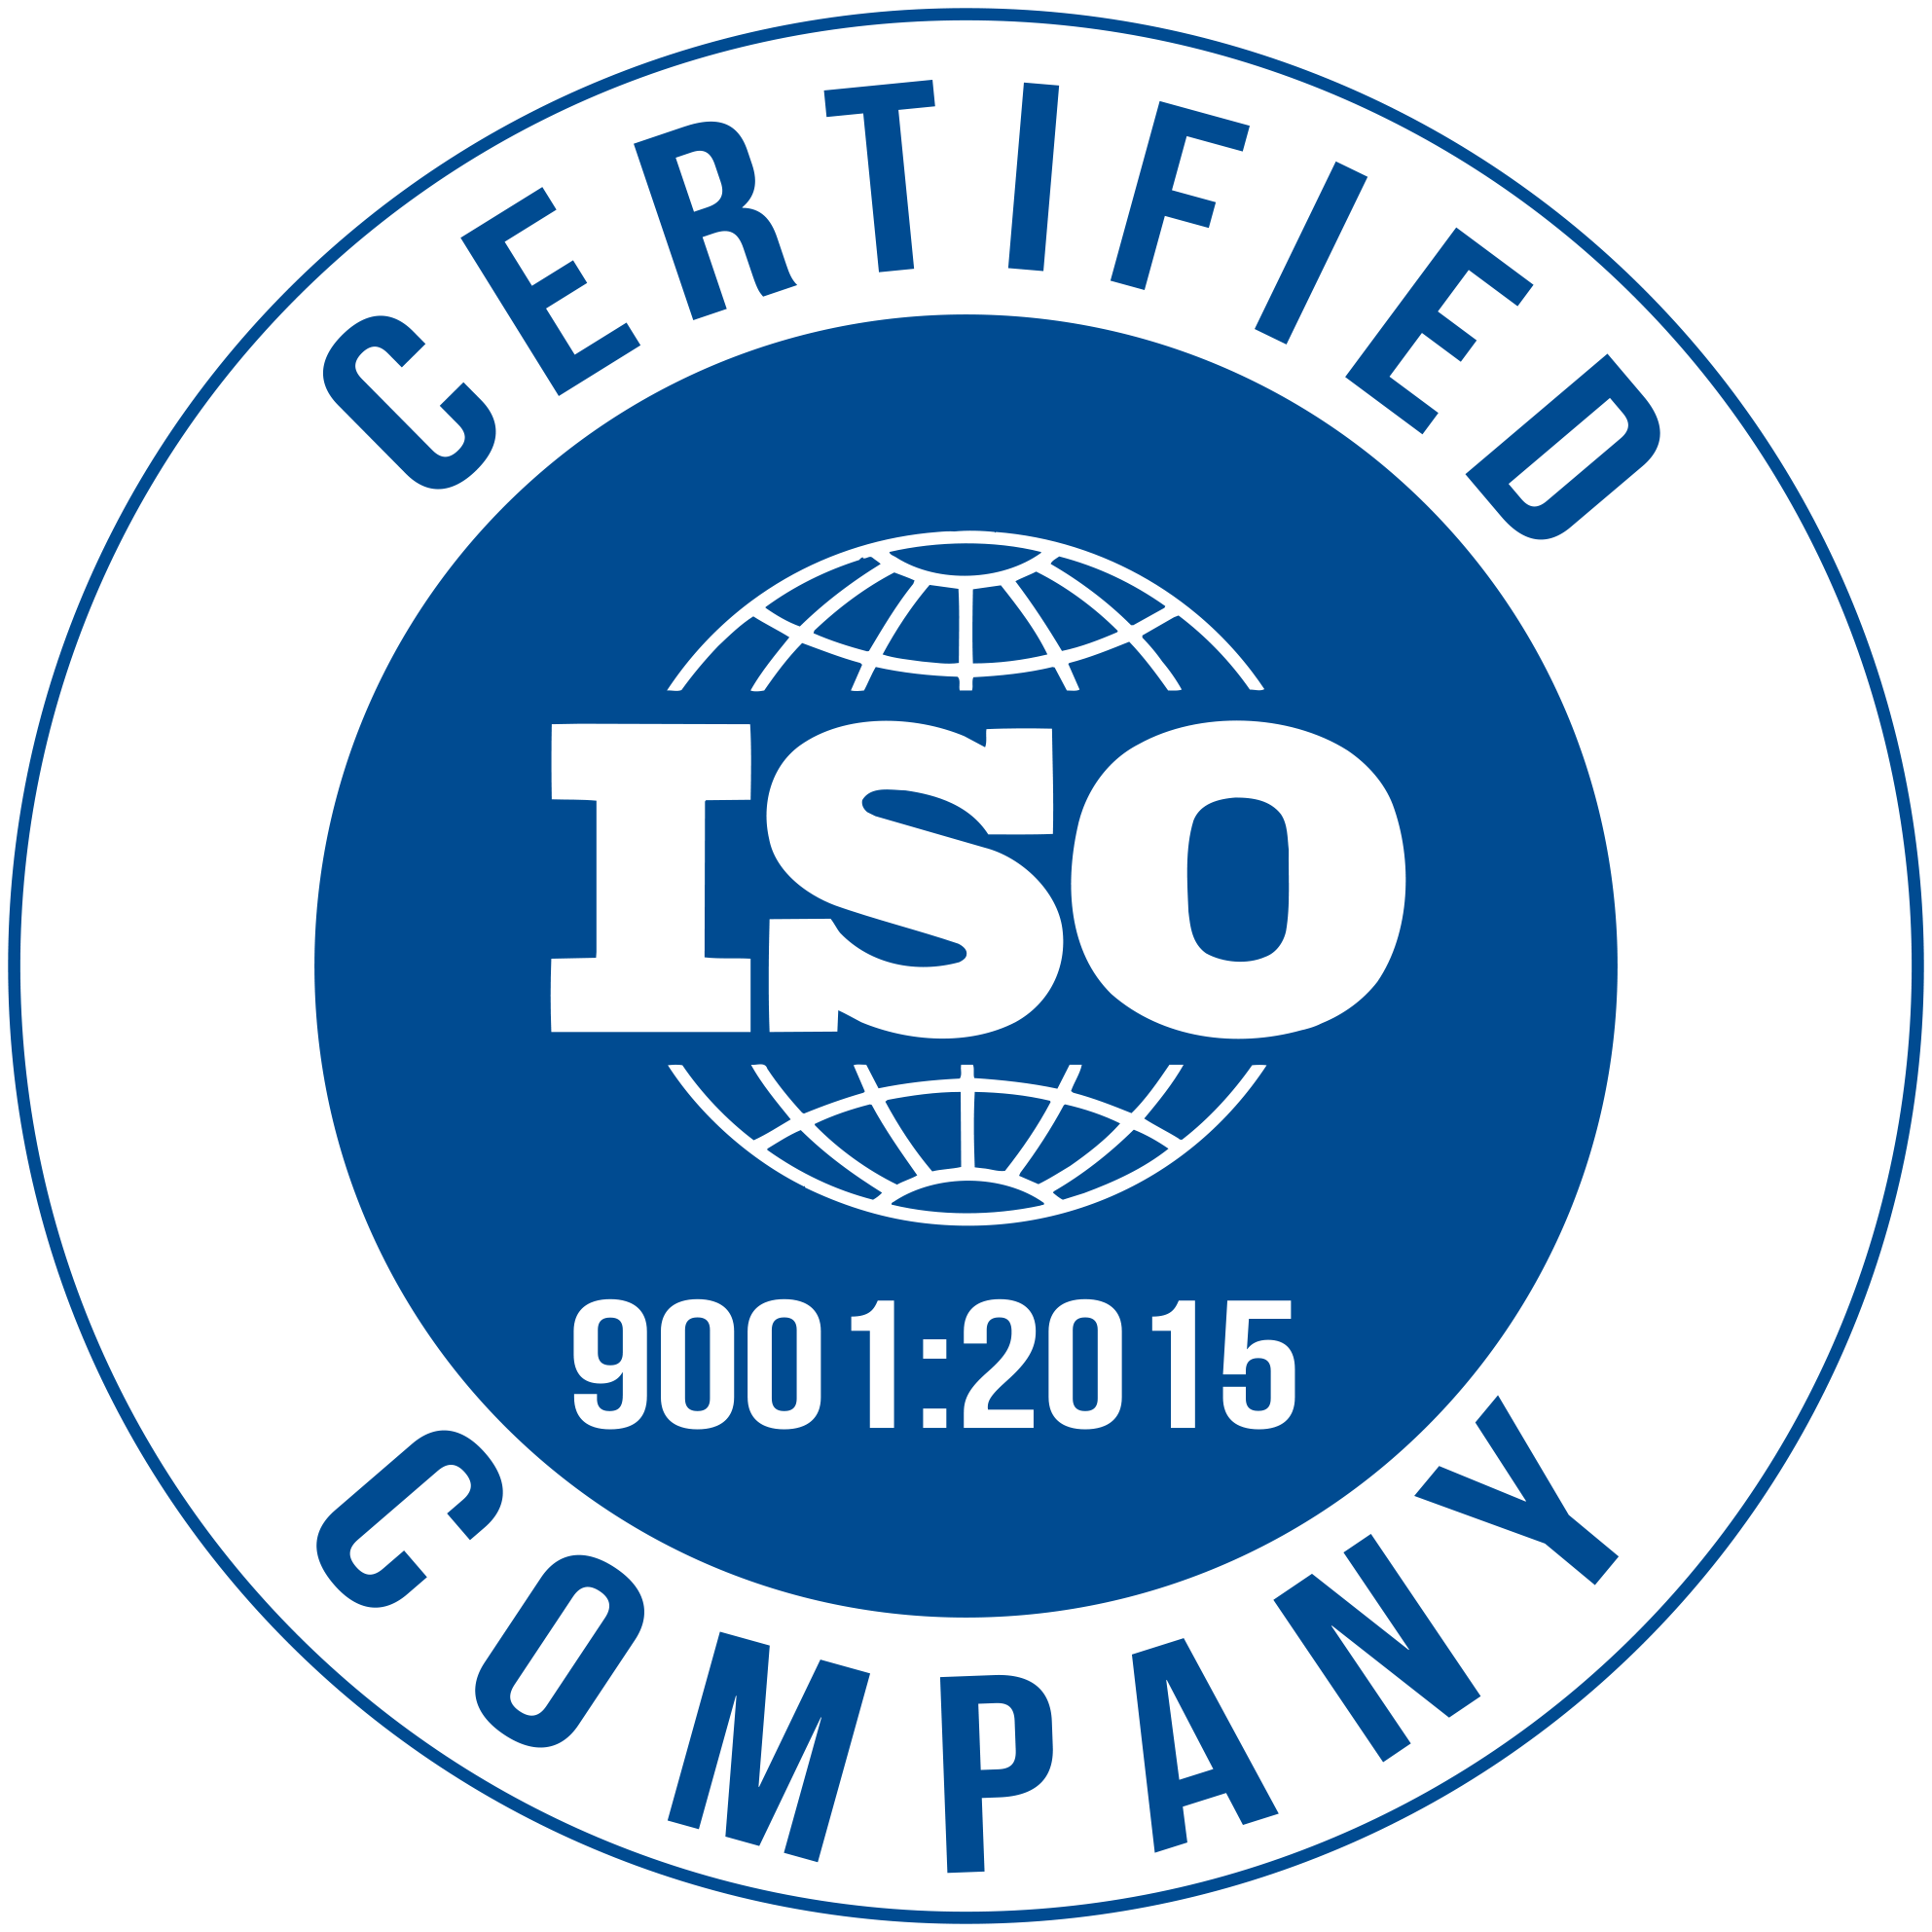 We are an ISO 9001:2015